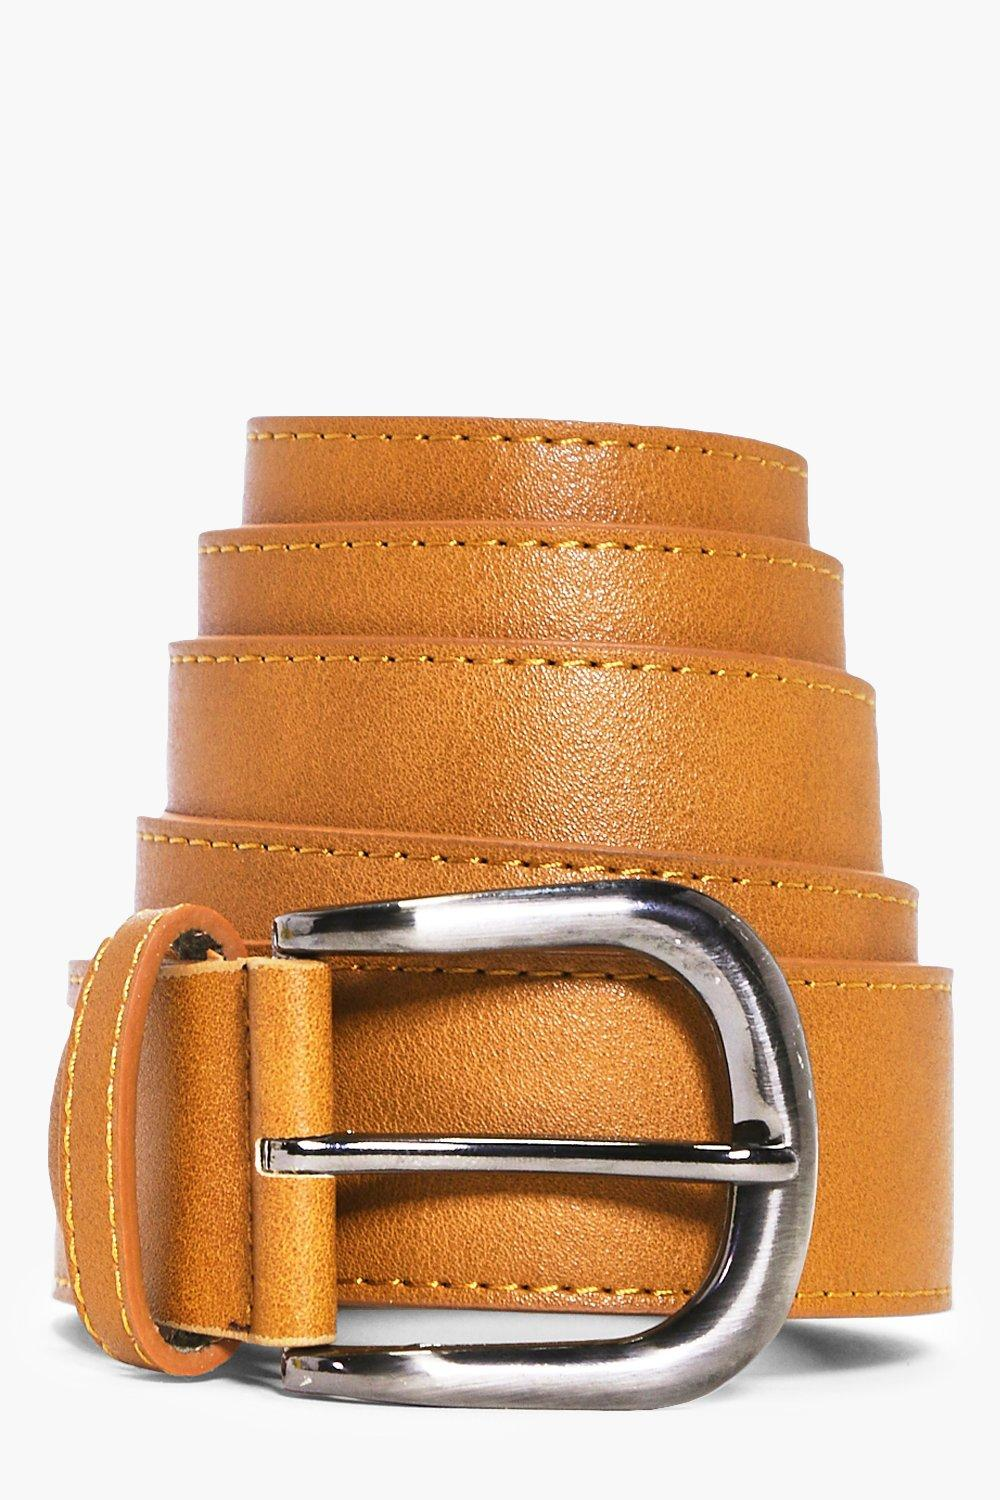 Leather Belt With Metal Buckle - tan - Faux Leathe